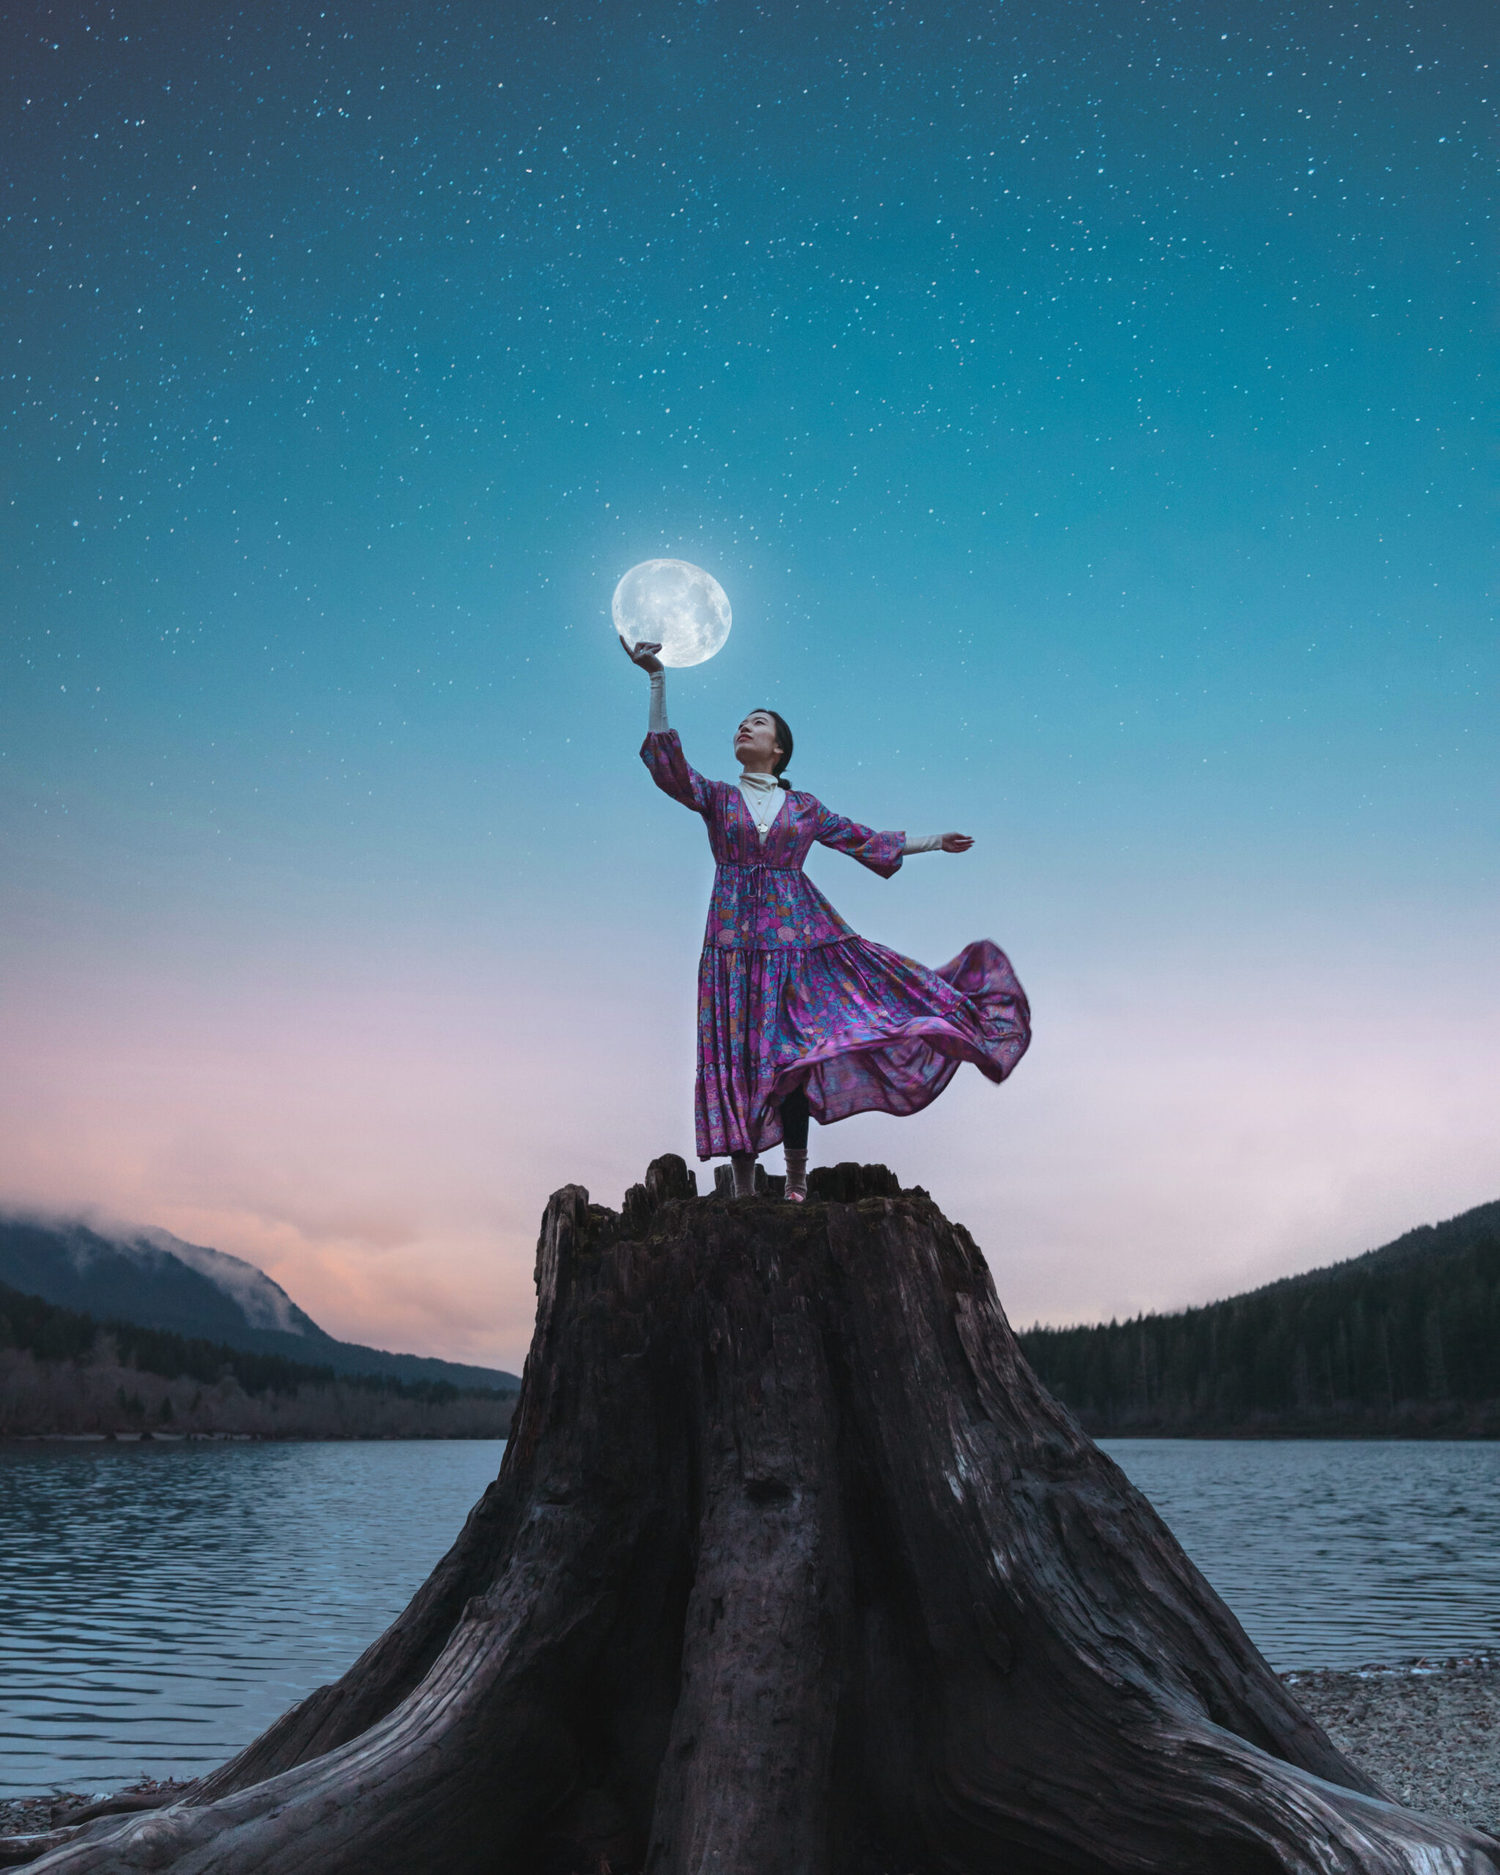 Photoshop edit of a girl holding up the moon